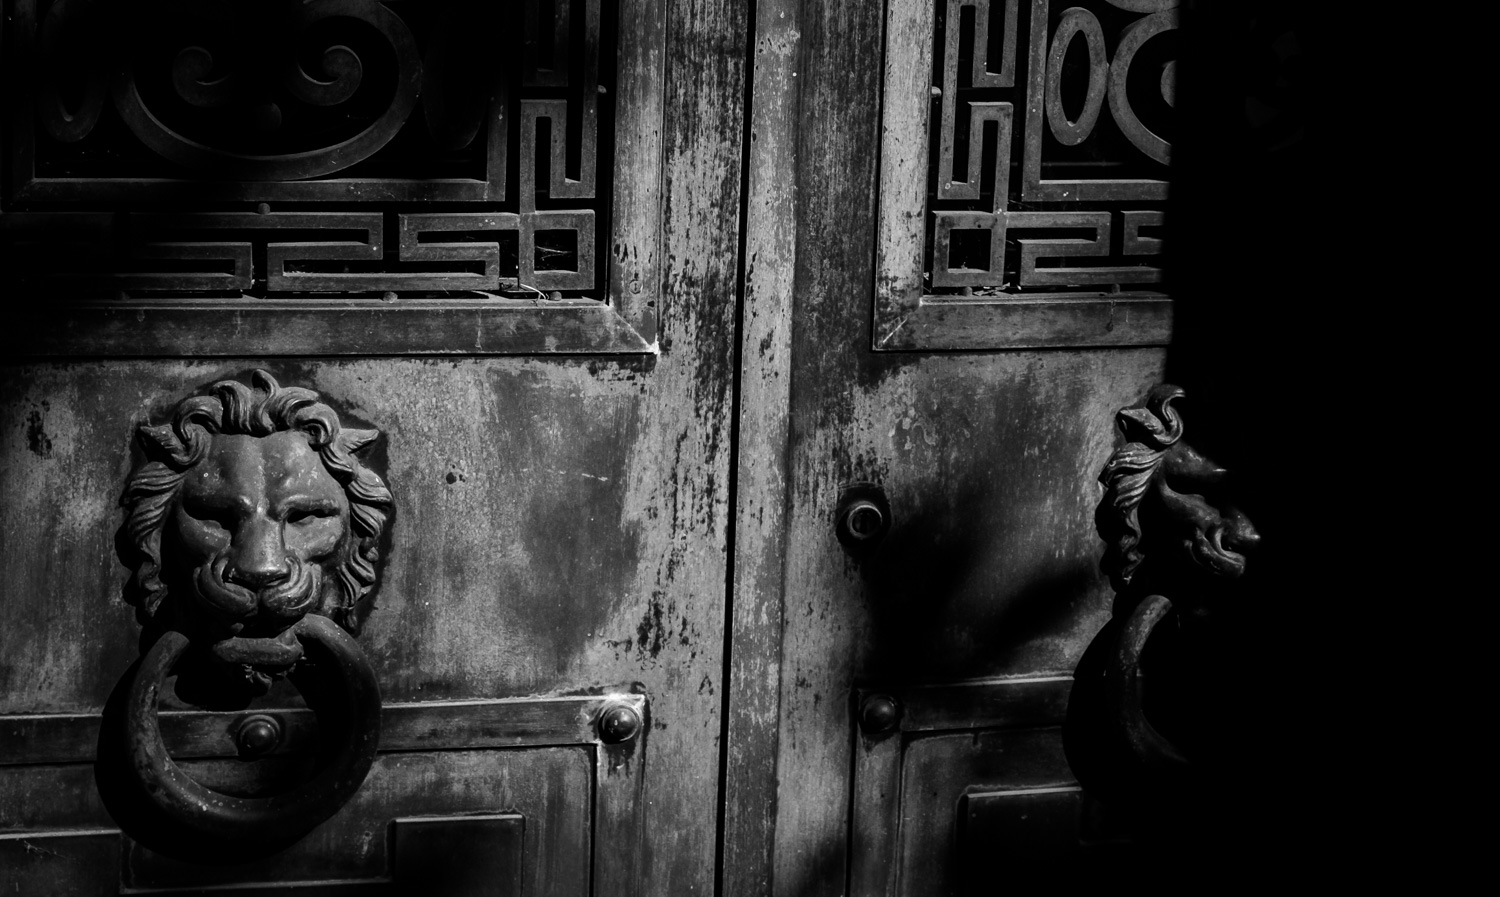 mausoleum door, bronx, new york_2015.jpg